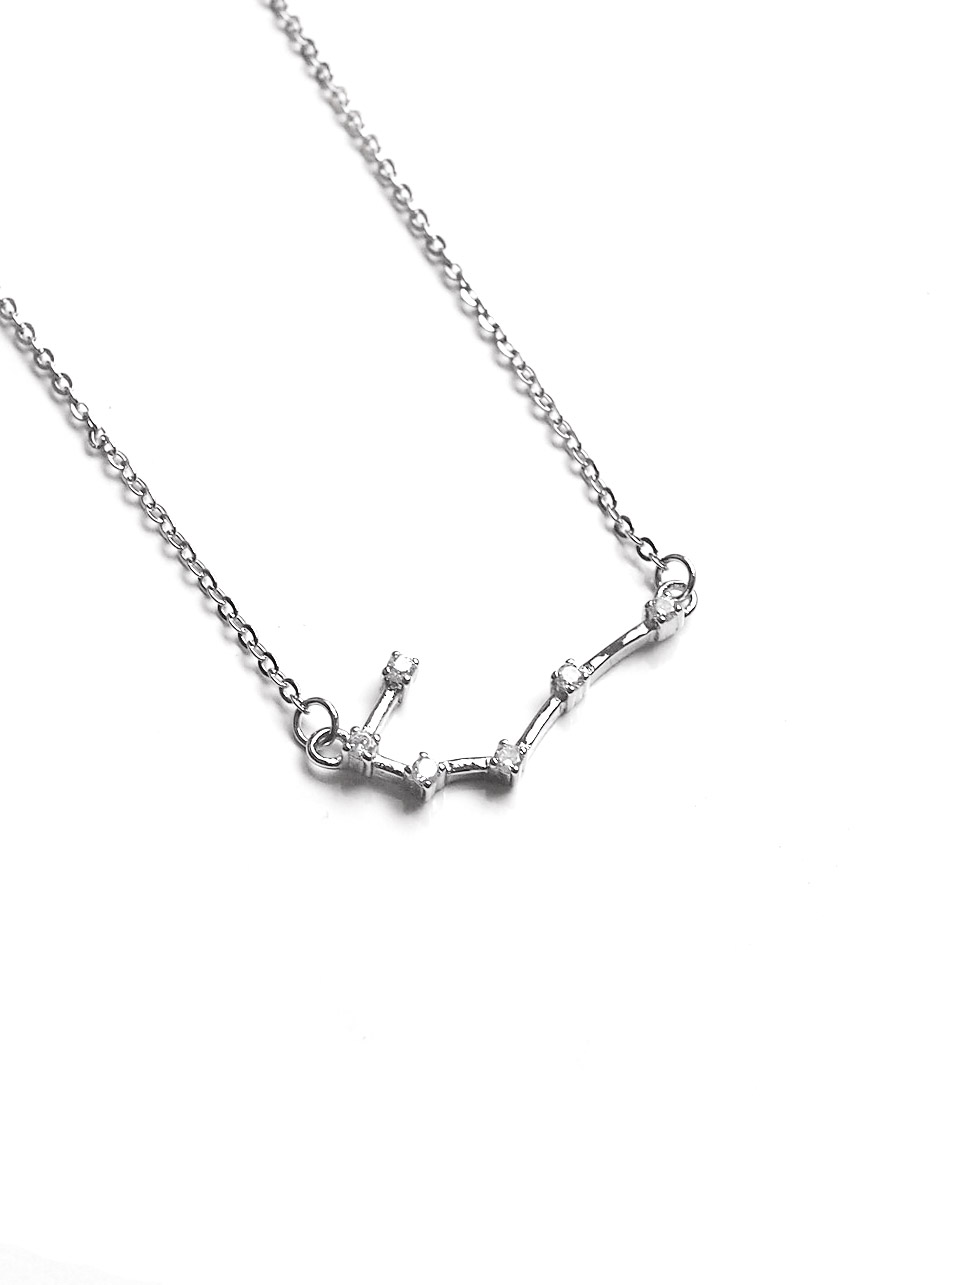 Premium cancer zodiac constellation necklace arva acc935 7 premium cancer zodiac constellation necklace aloadofball Image collections